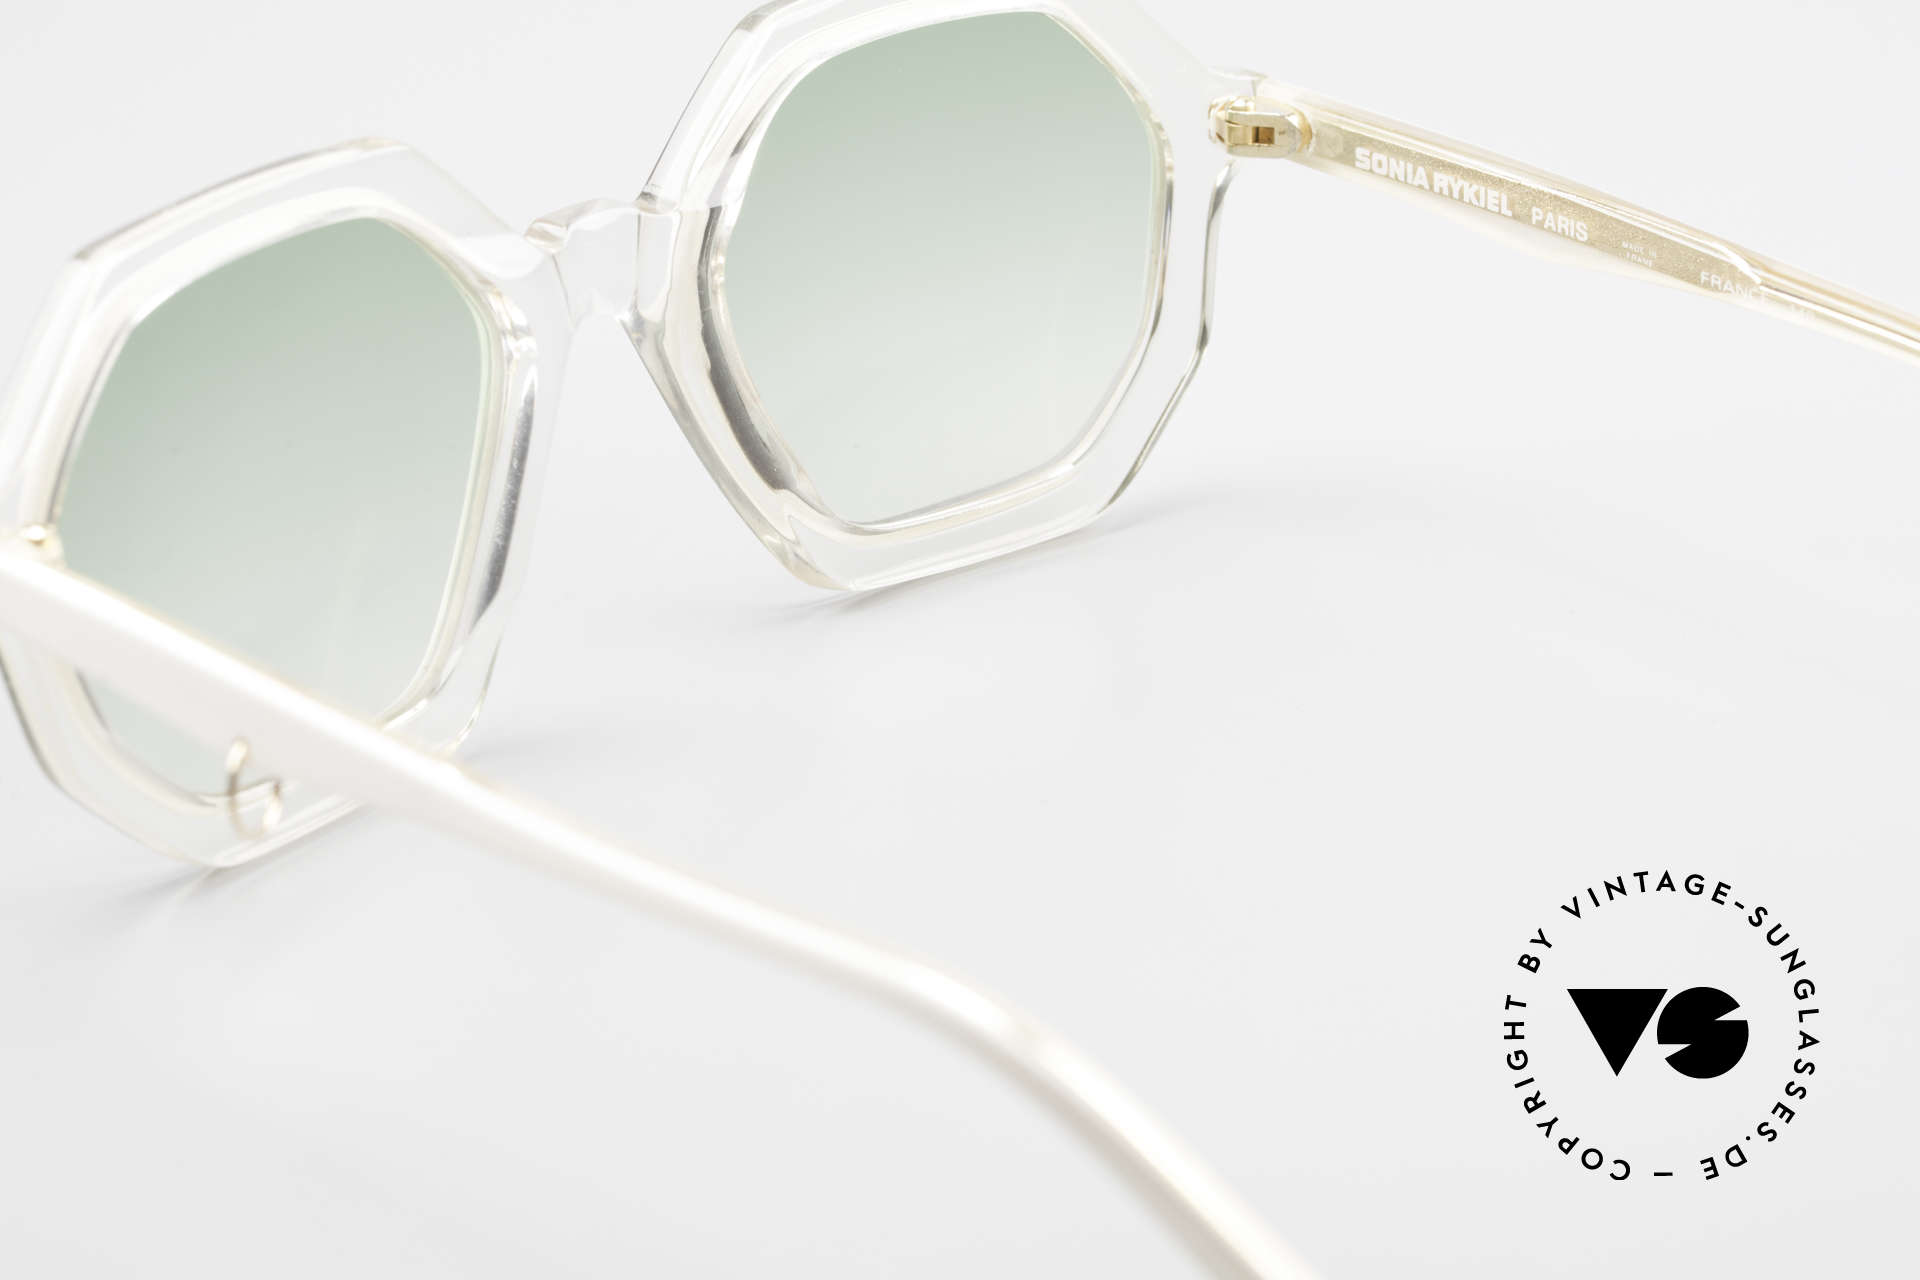 Sonia Rykiel SR46 444 Octagonal Sunglasses 1970's, sun lenses (100% UV) can be replaced with prescriptions, Made for Women